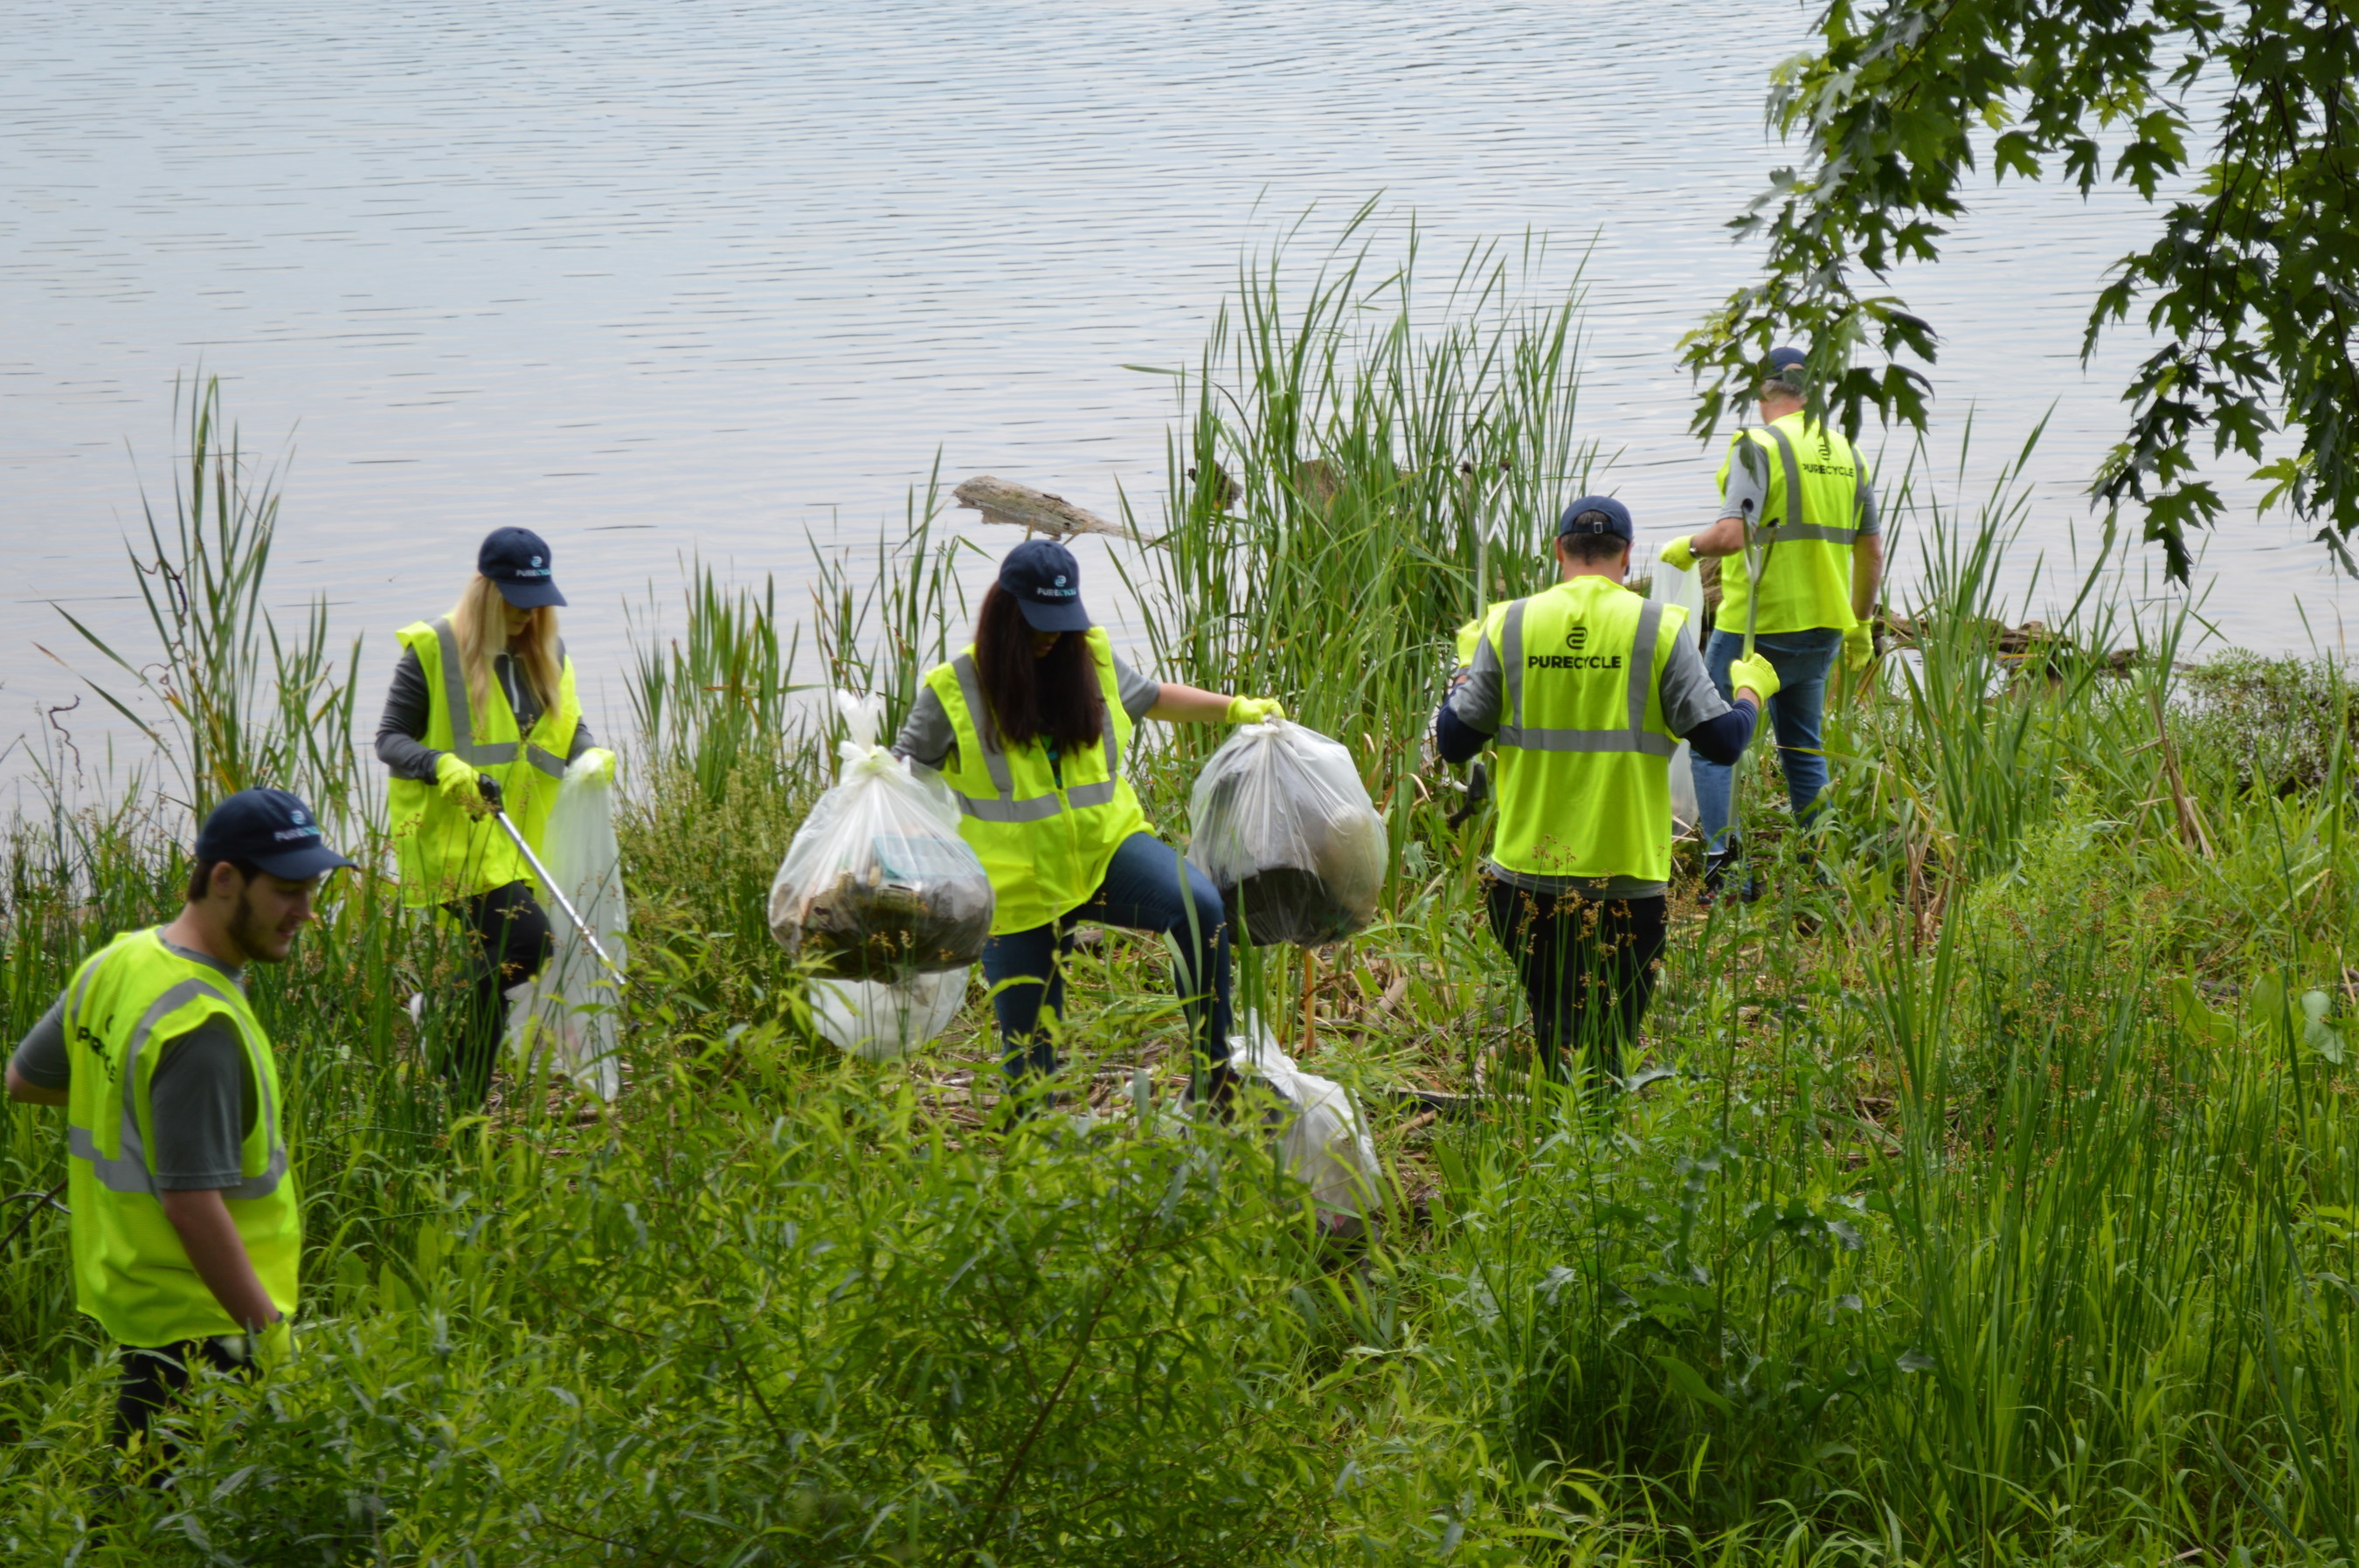 The Pure Planet Day team collects plastic waste along the Ohio river bank and County Road 1A in Ironton near PureCycle's recycling facilities.